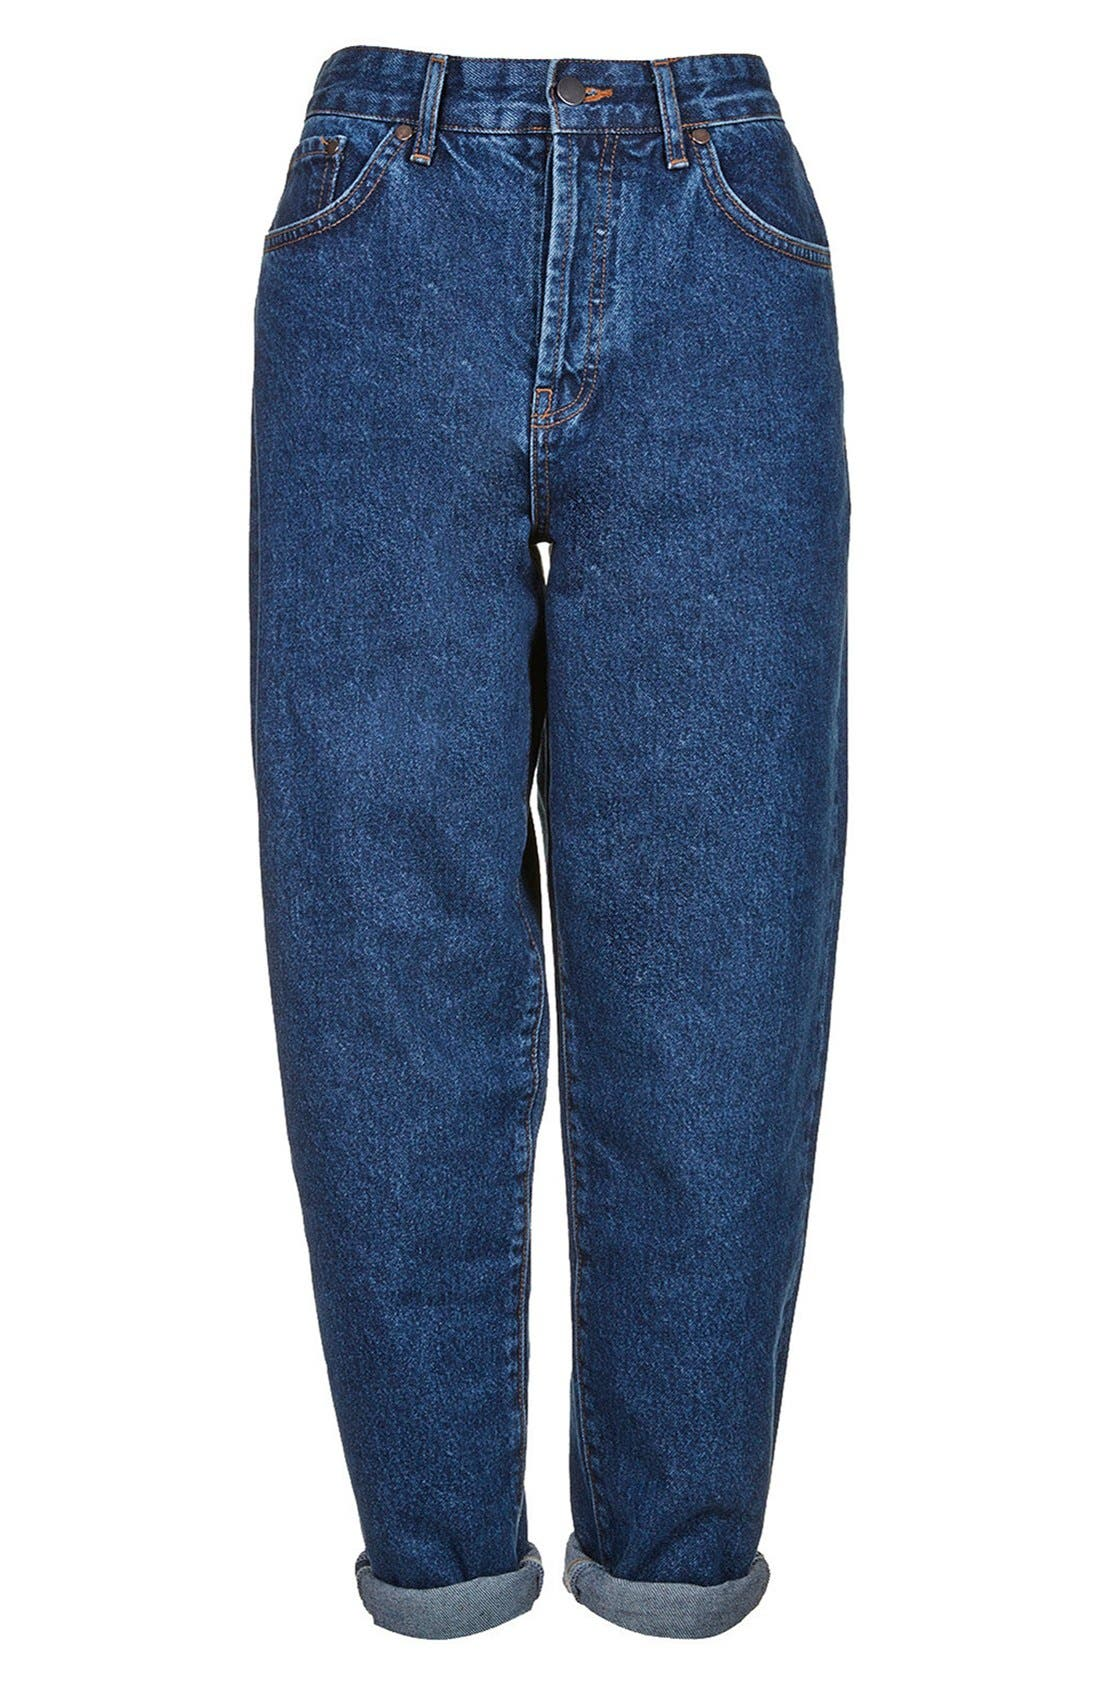 Alternate Image 3  - Topshop Boutique High Rise Slouchy Jeans (Mid Denim)